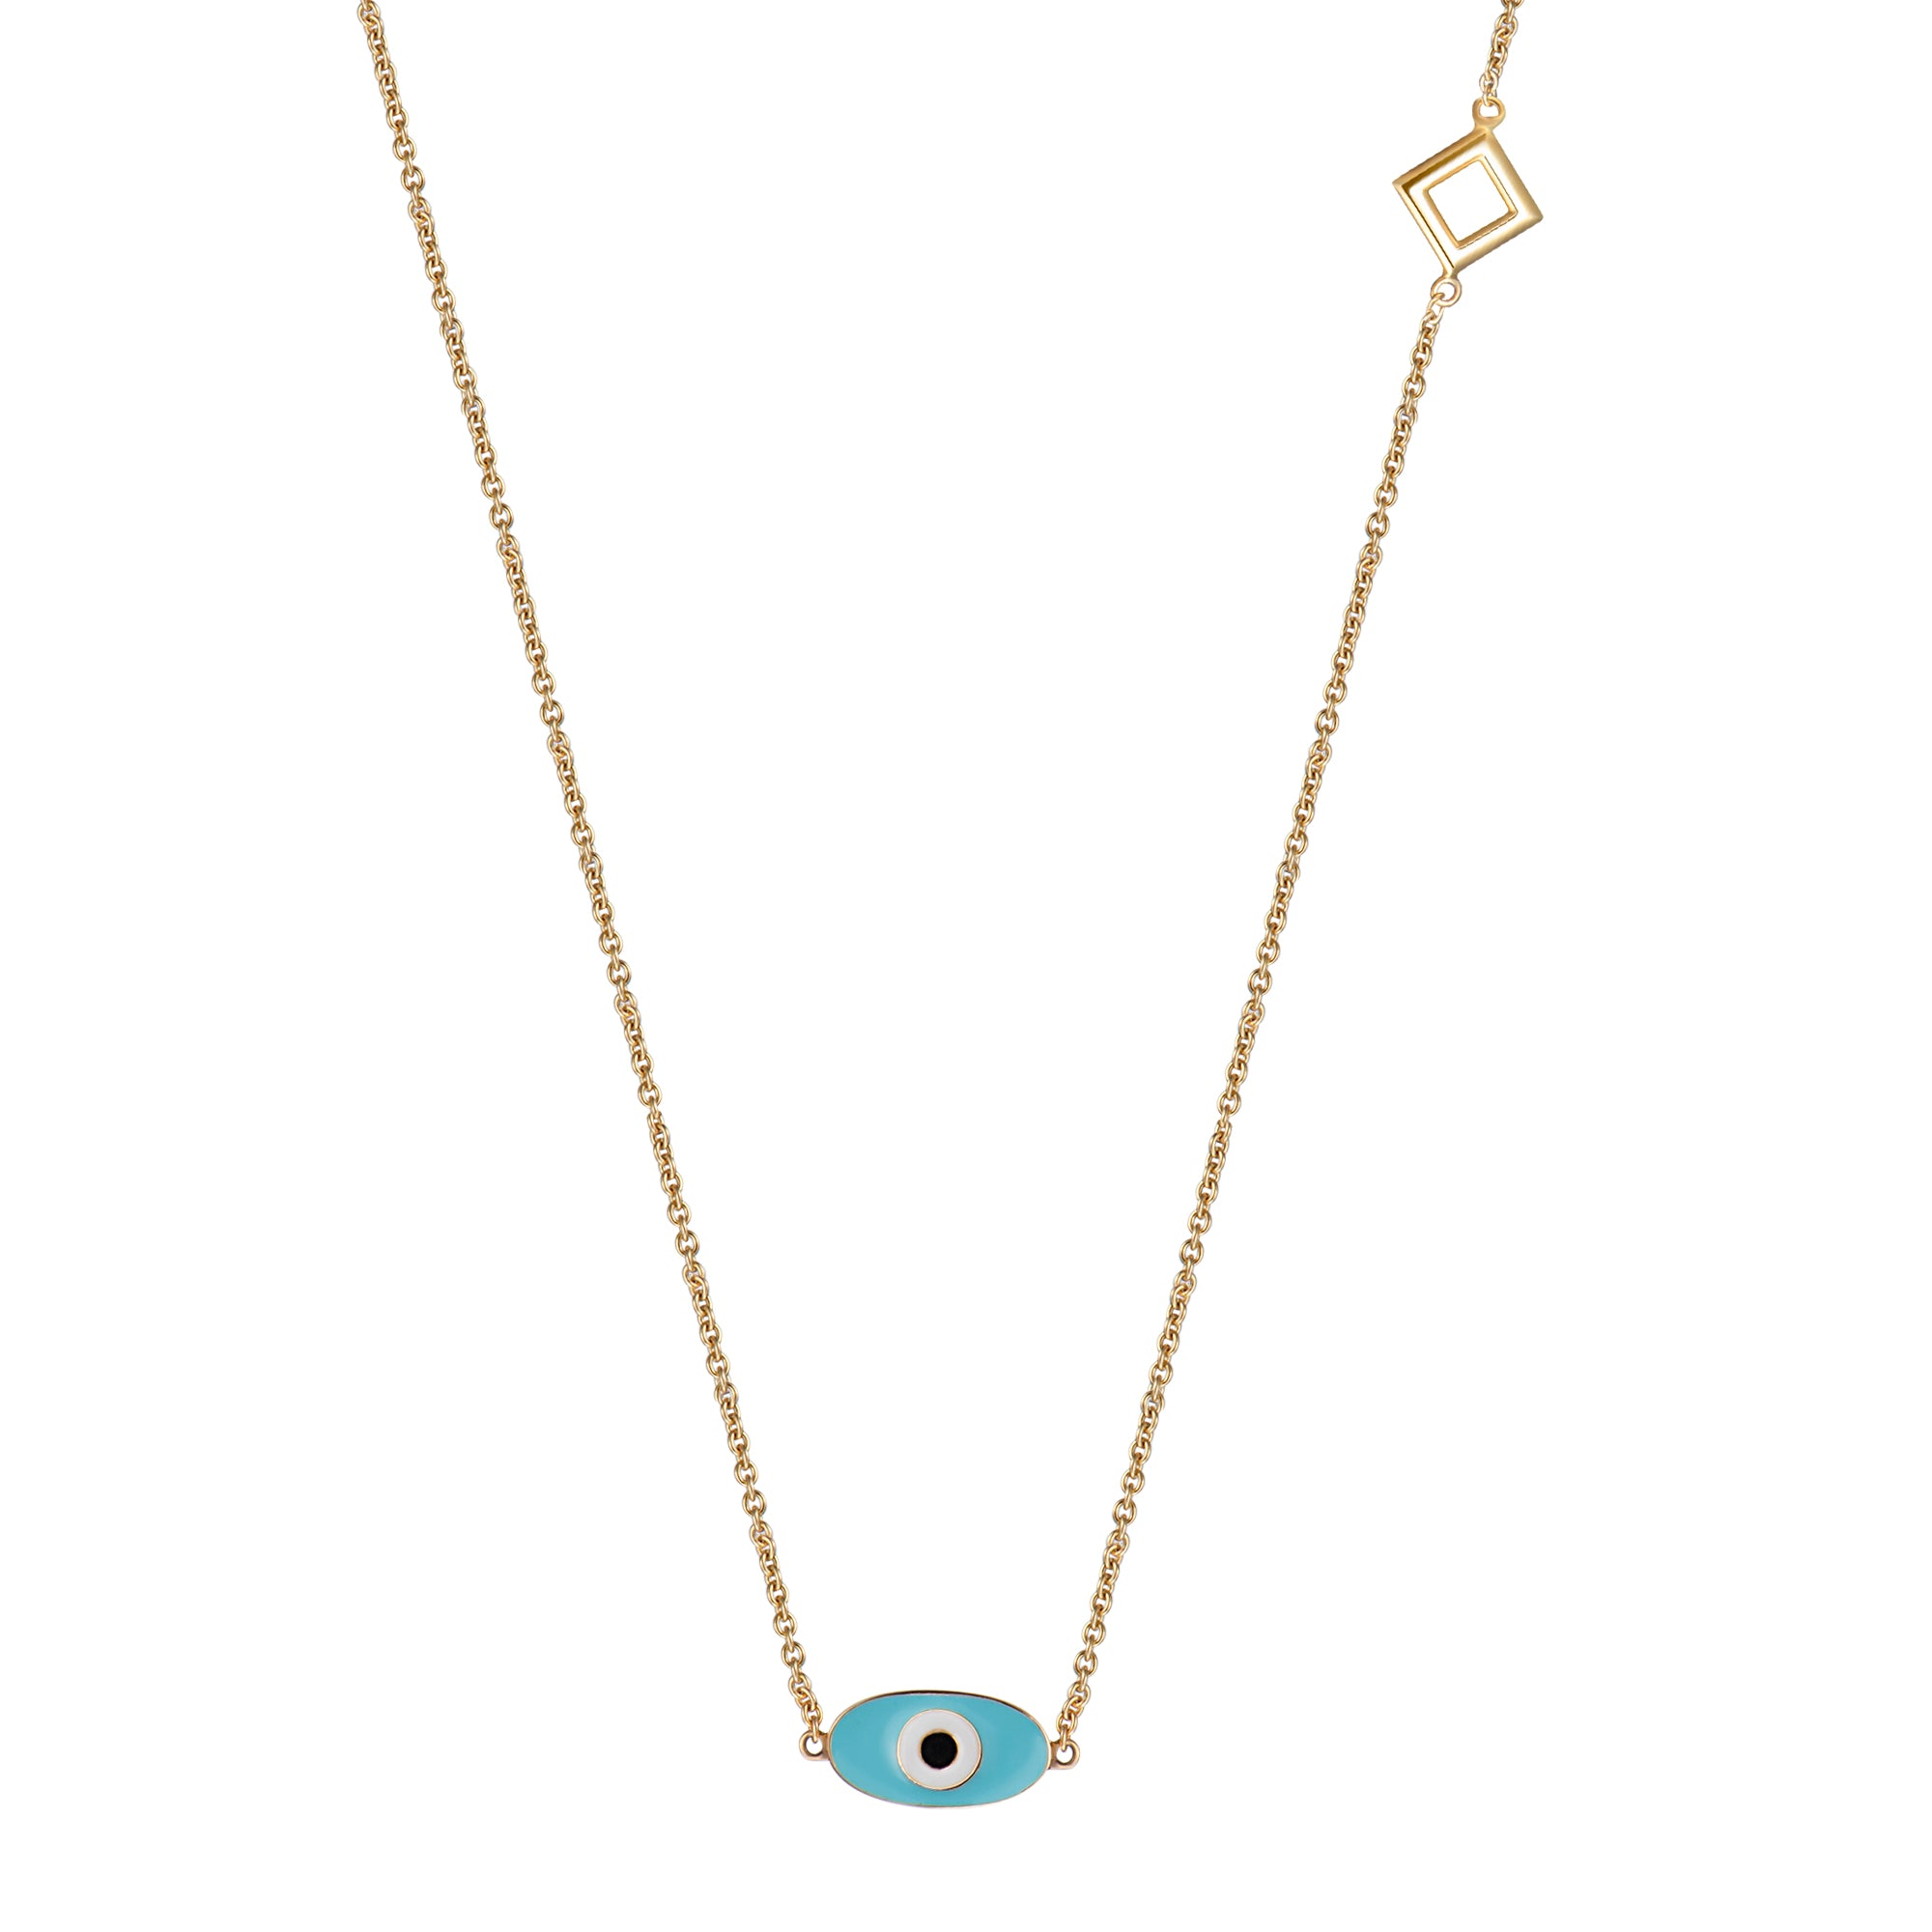 gold evil birthday gift product wholesale blue third necklace eye pendant cz celebrity silver